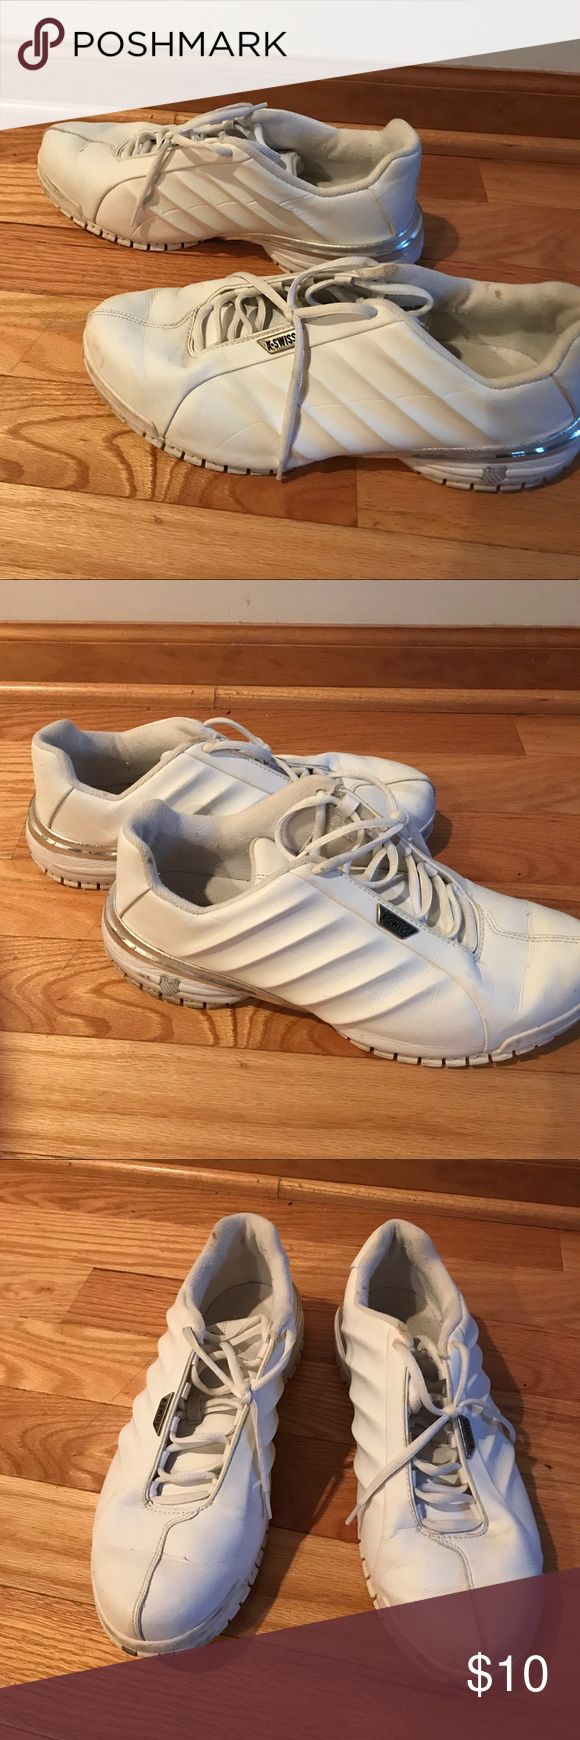 Men's Shoes Men's white KSwiss  size 12 hardly worn k swiss Shoes Sneakers